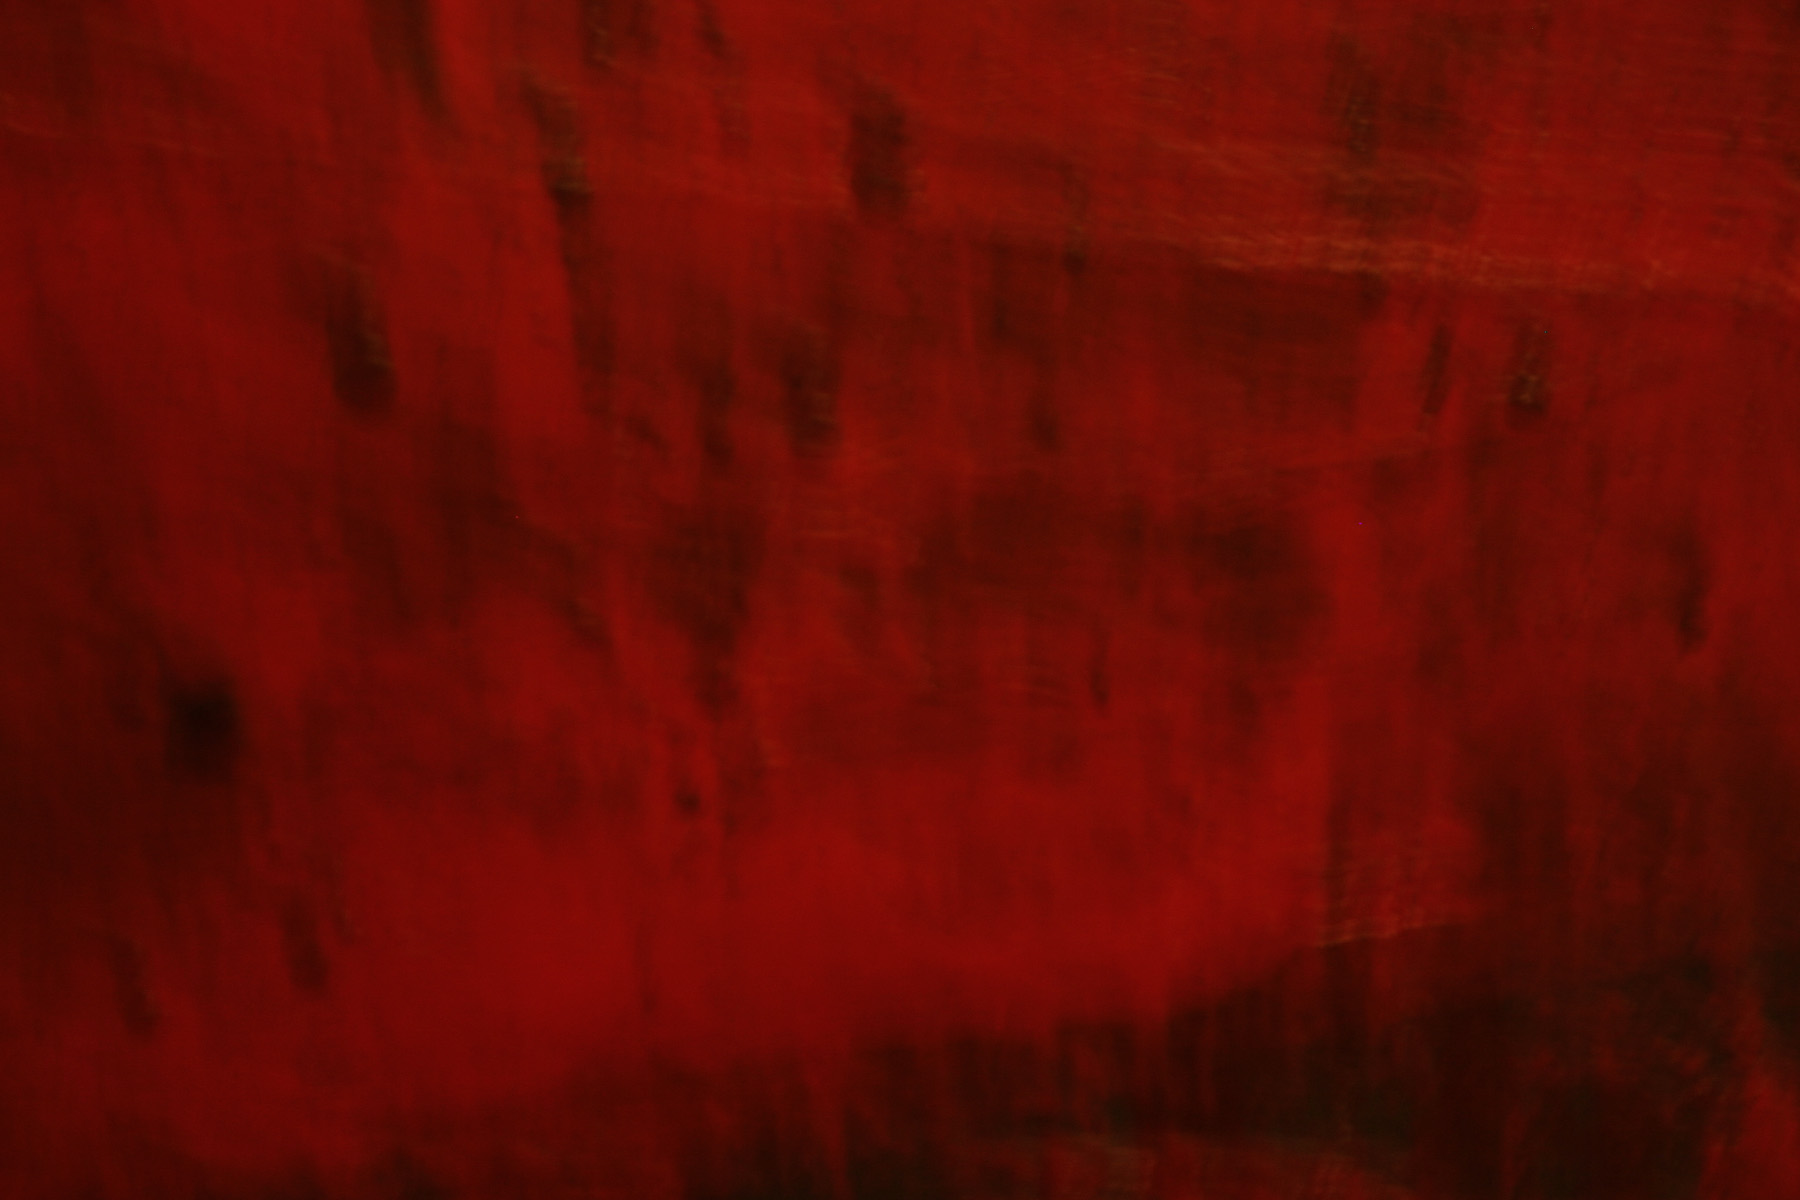 Red blur, Canvas, Fuzzy, Paint, Painting, HQ Photo